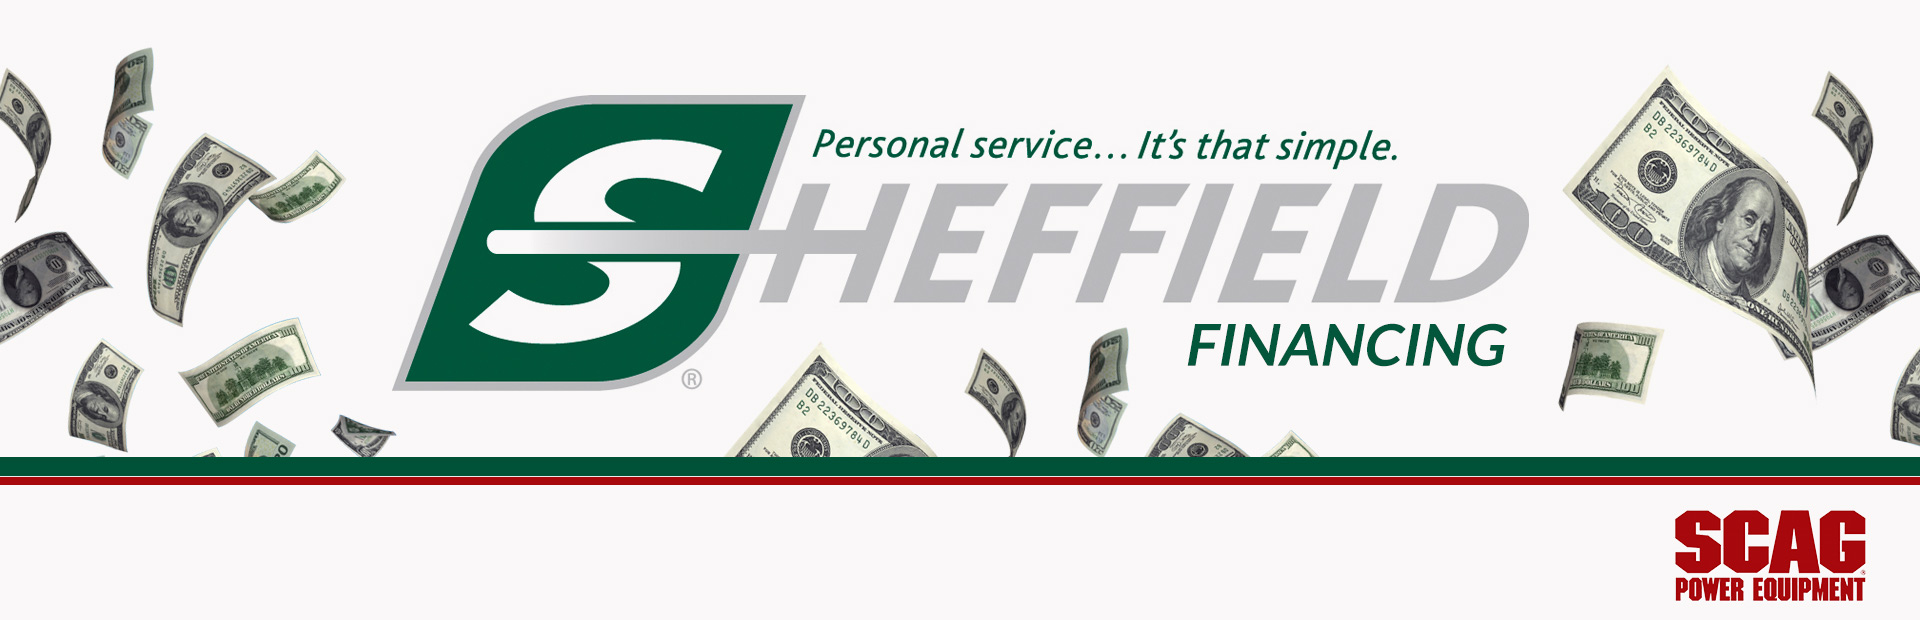 Scag: Sheffield Financing